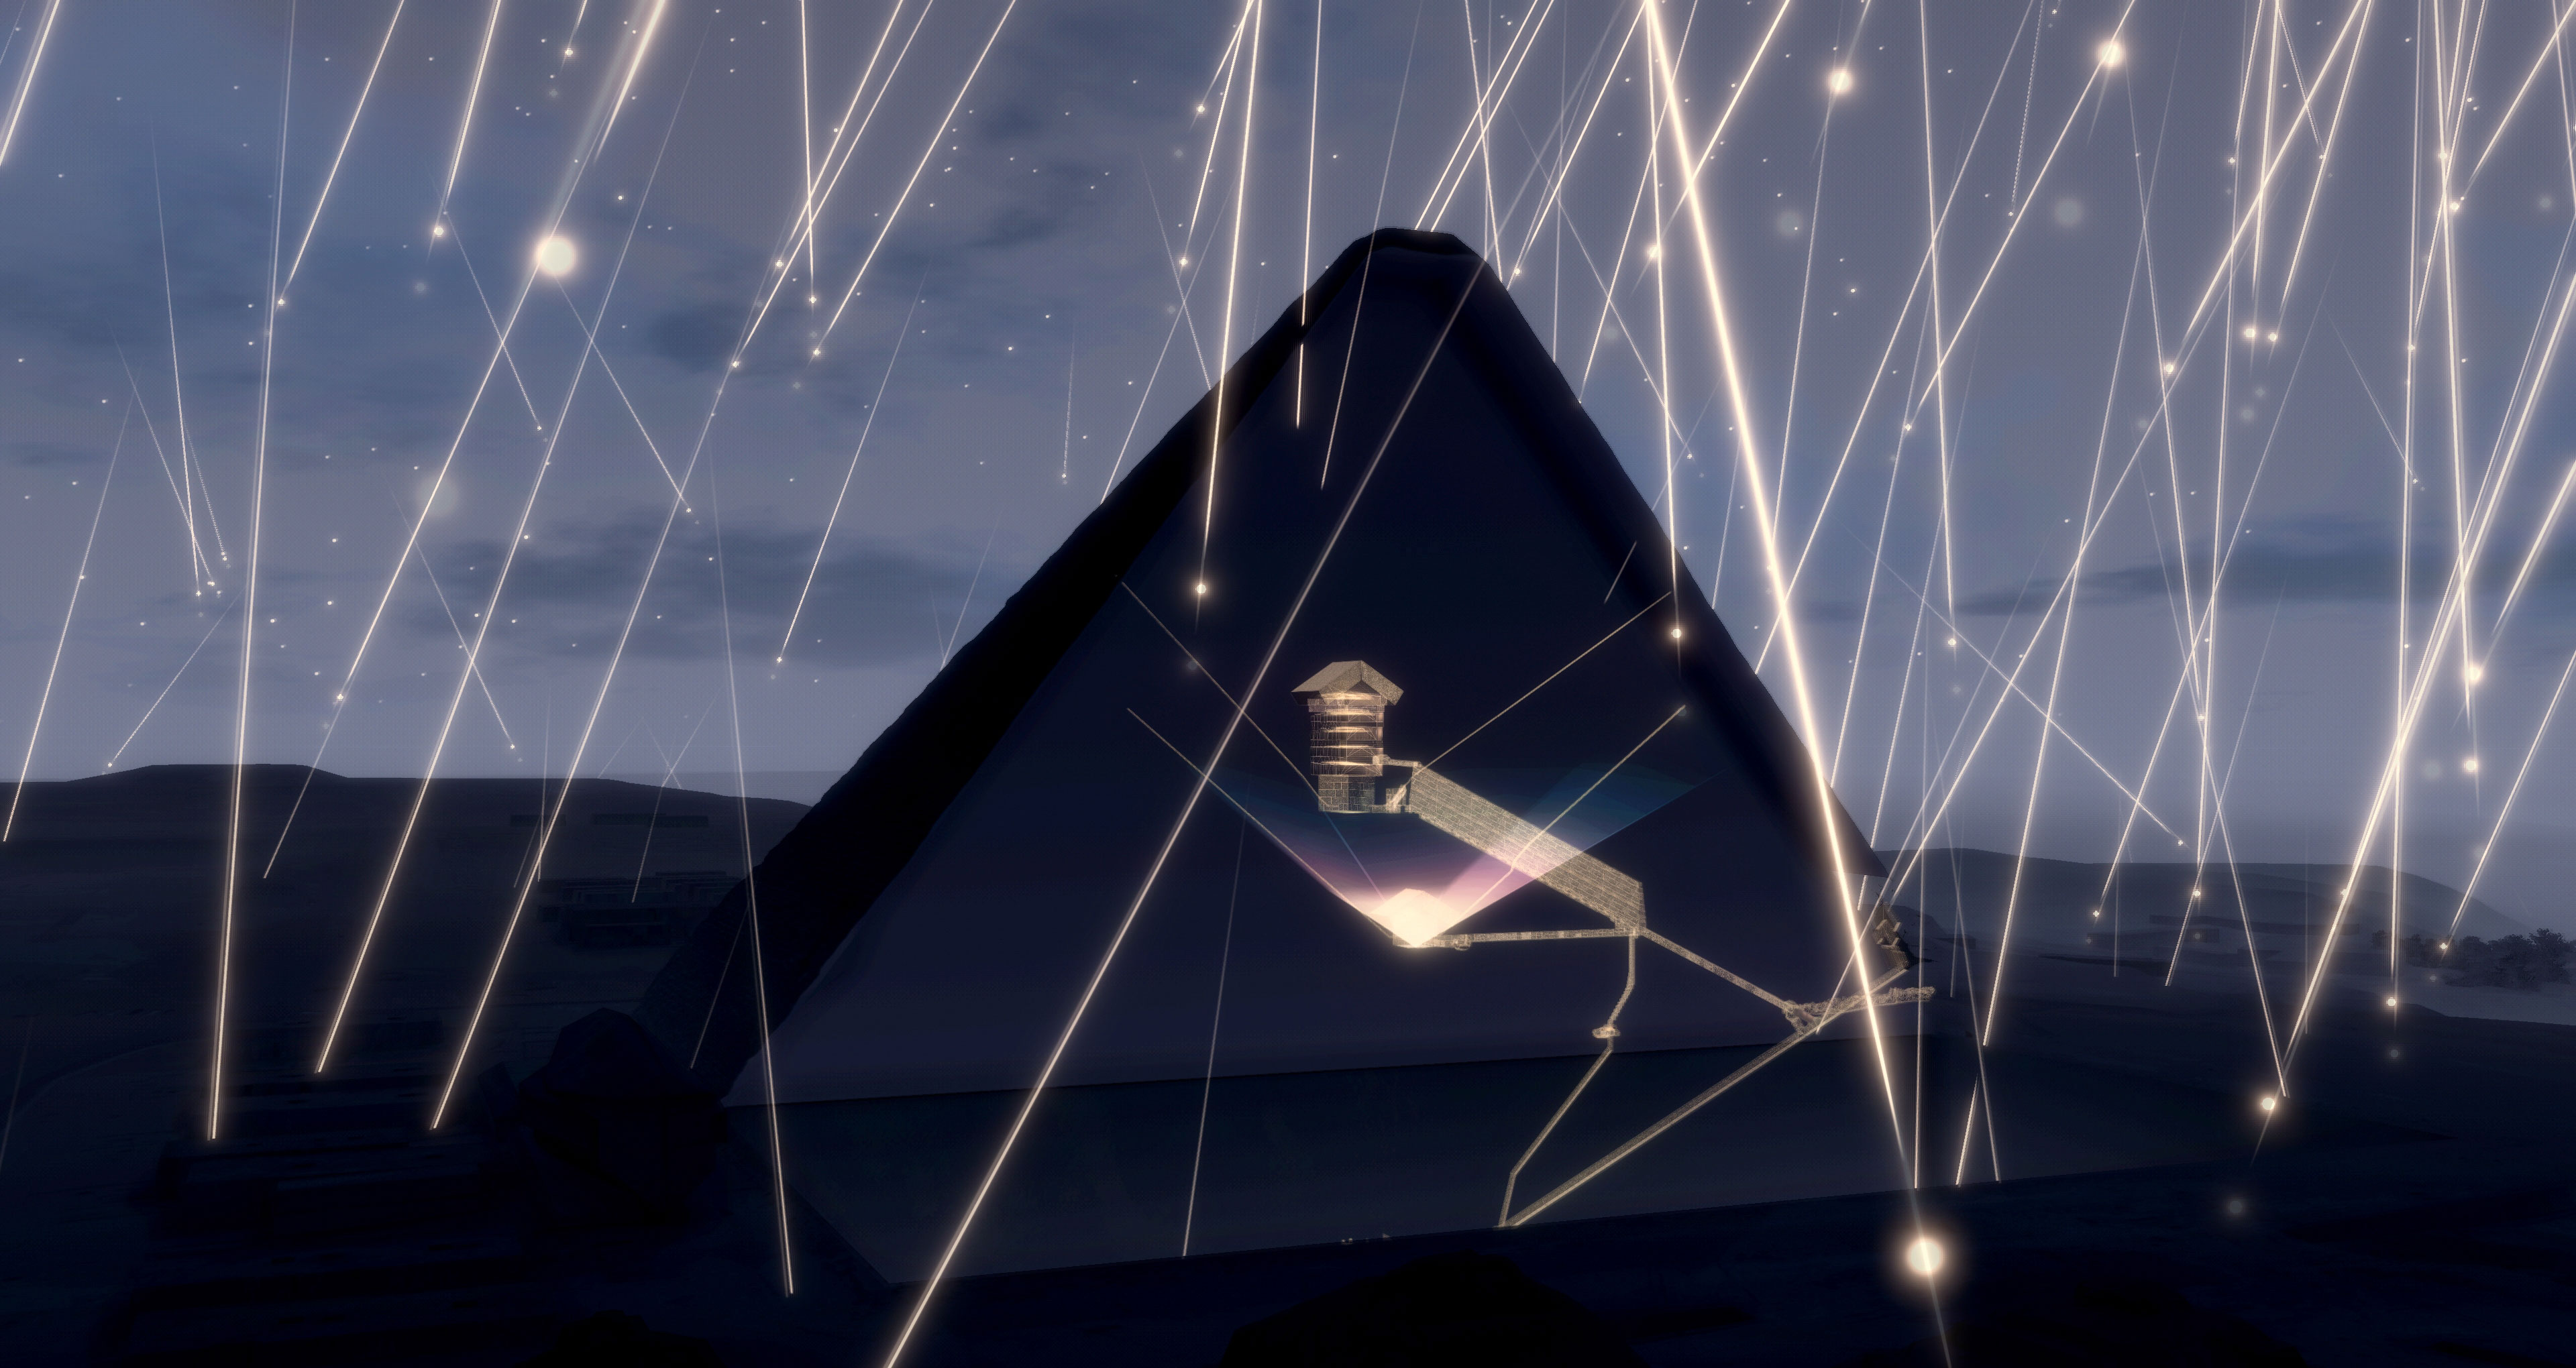 Cosmic ray muons on the cut of Khufu pyramid